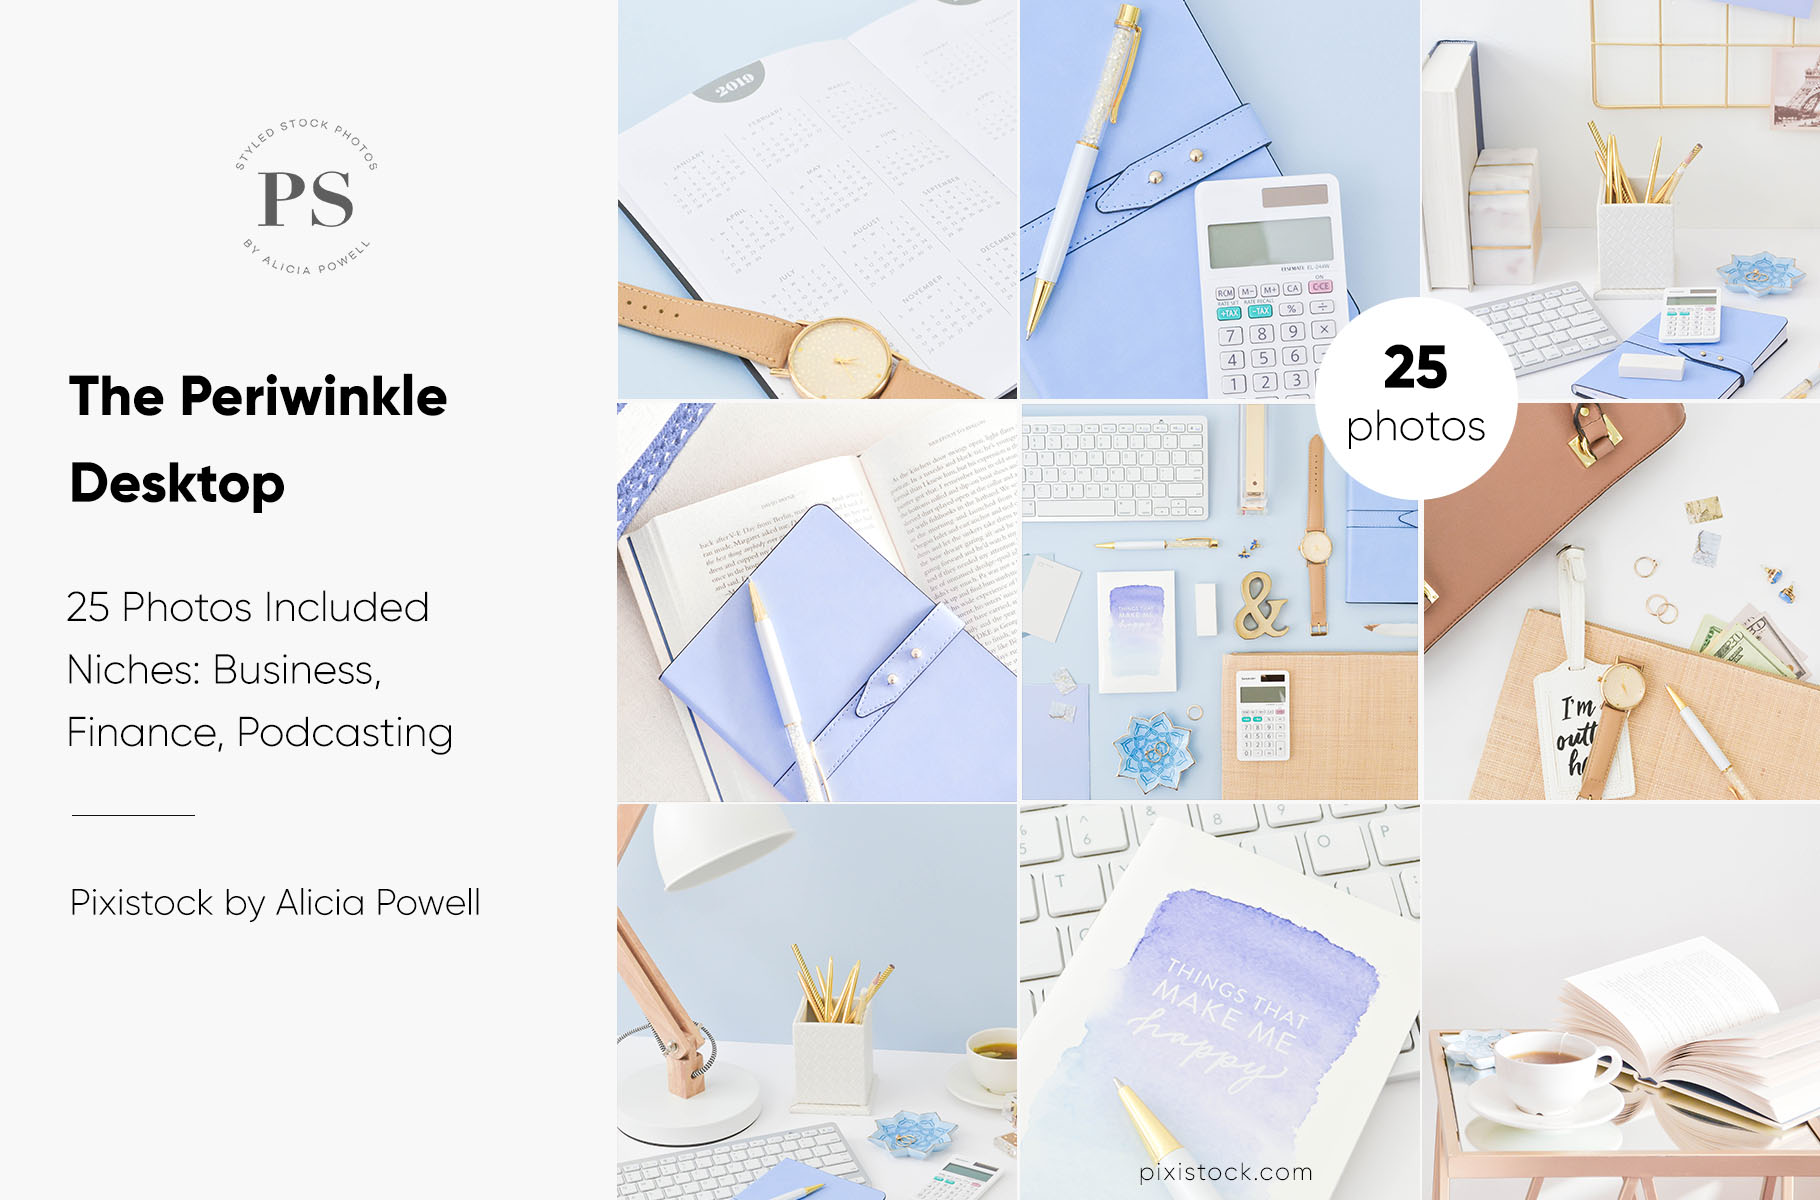 Periwinkle Desktop Stock Photo Collection